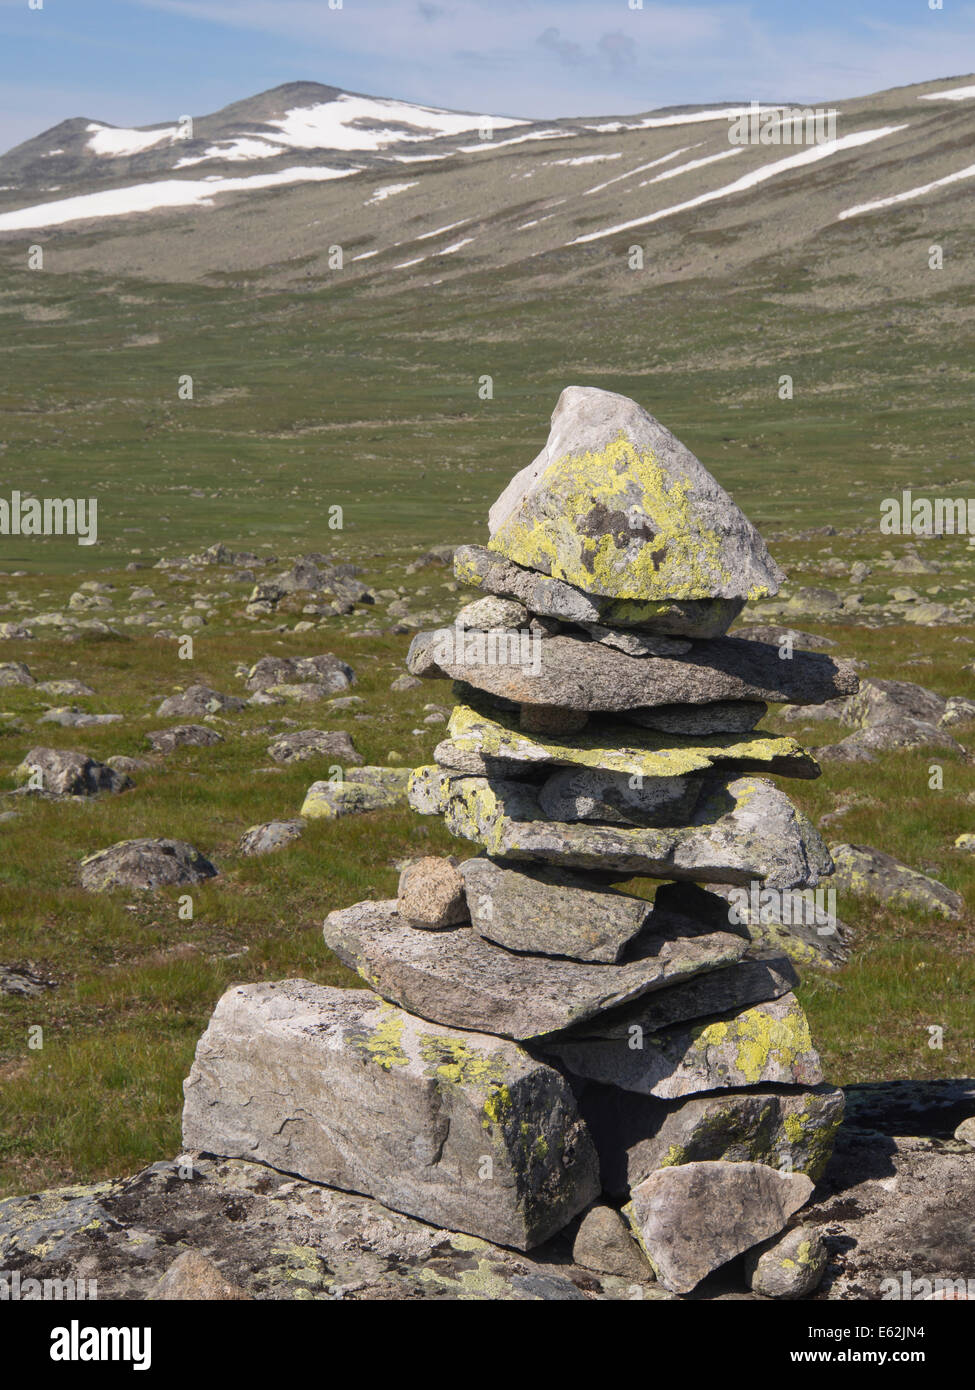 Valdresflya in Jotunheimen Norway, barren but inviting in the summer sun, small cairn leading the way into the mountains - Stock Image